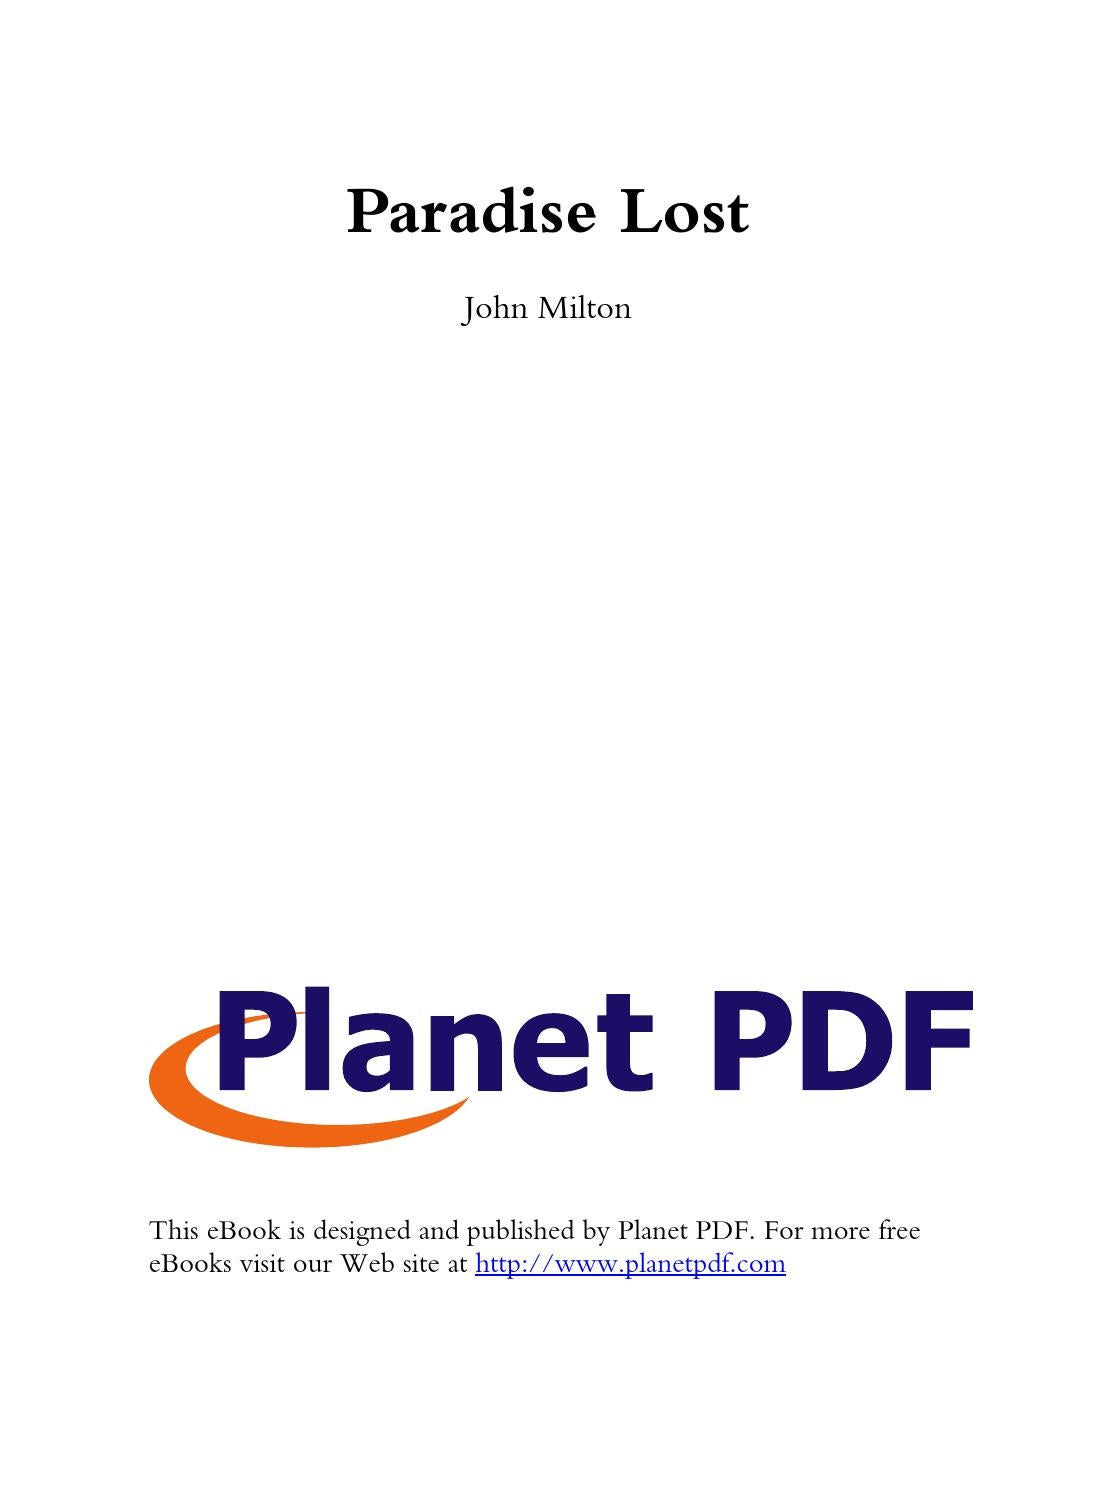 Buy essay online cheap epic characteristics of paradise lost